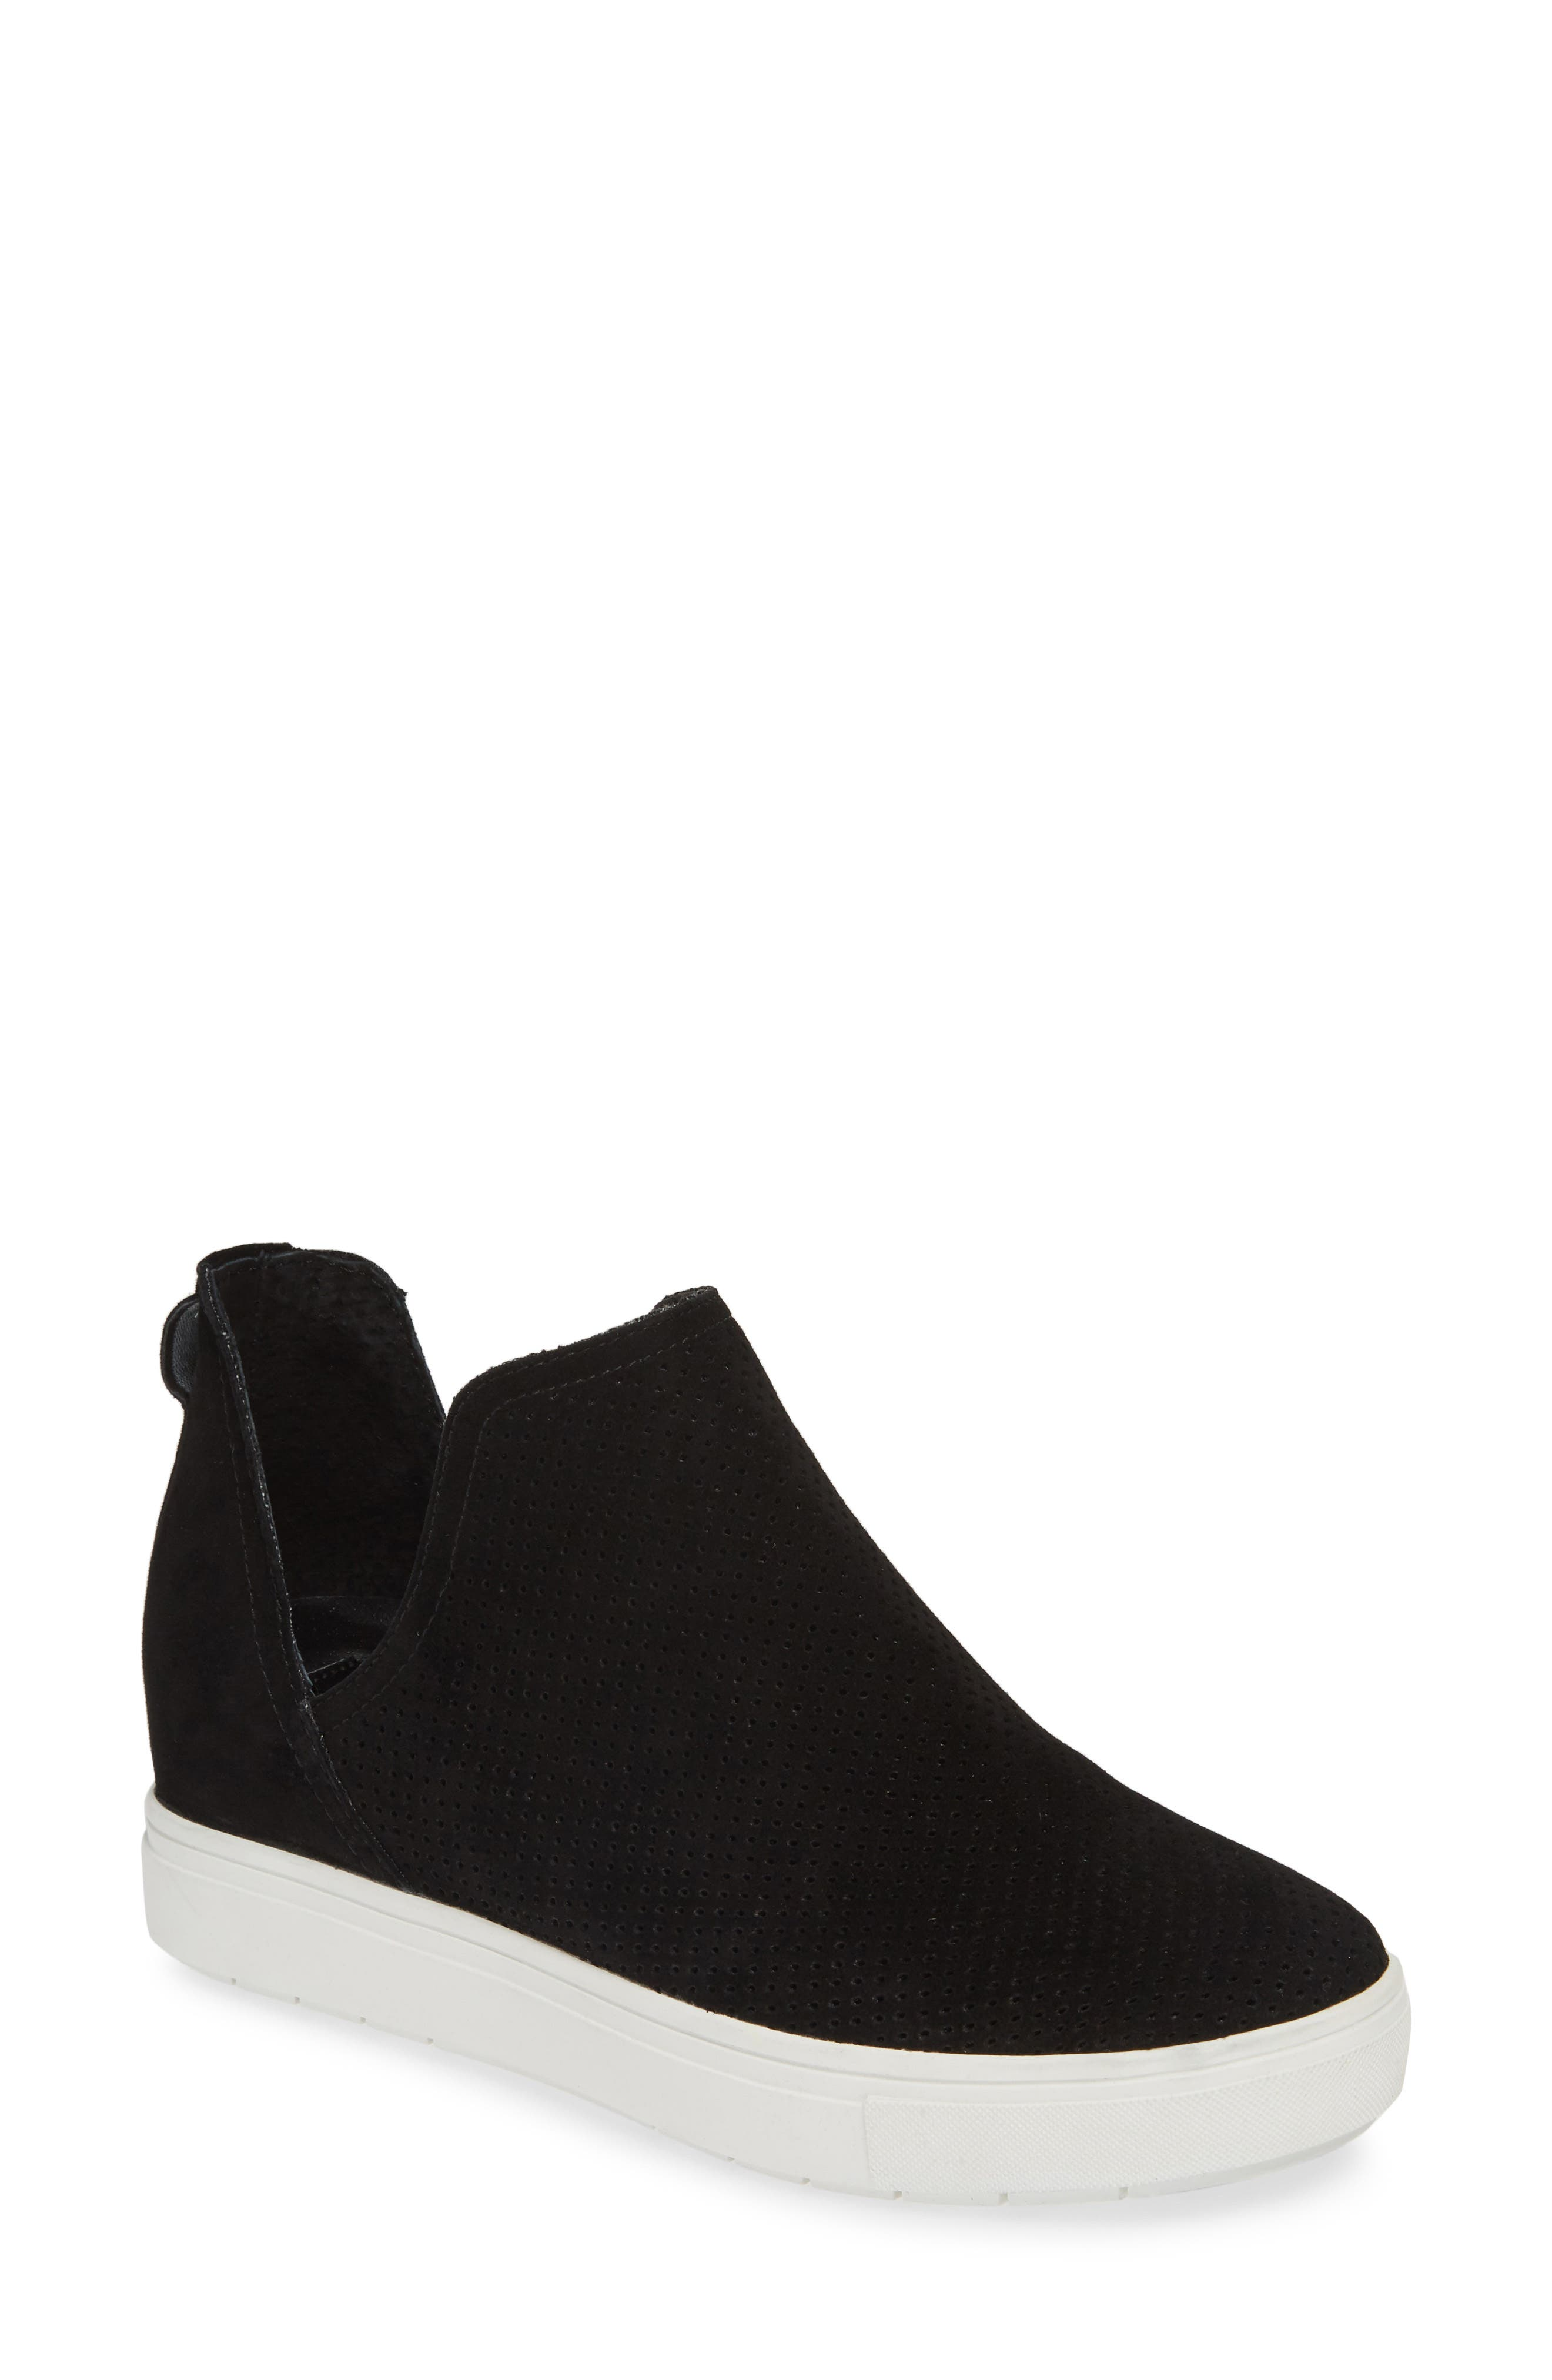 STEVEN BY STEVE MADDEN, Canares High Top Sneaker, Main thumbnail 1, color, BLACK SUEDE